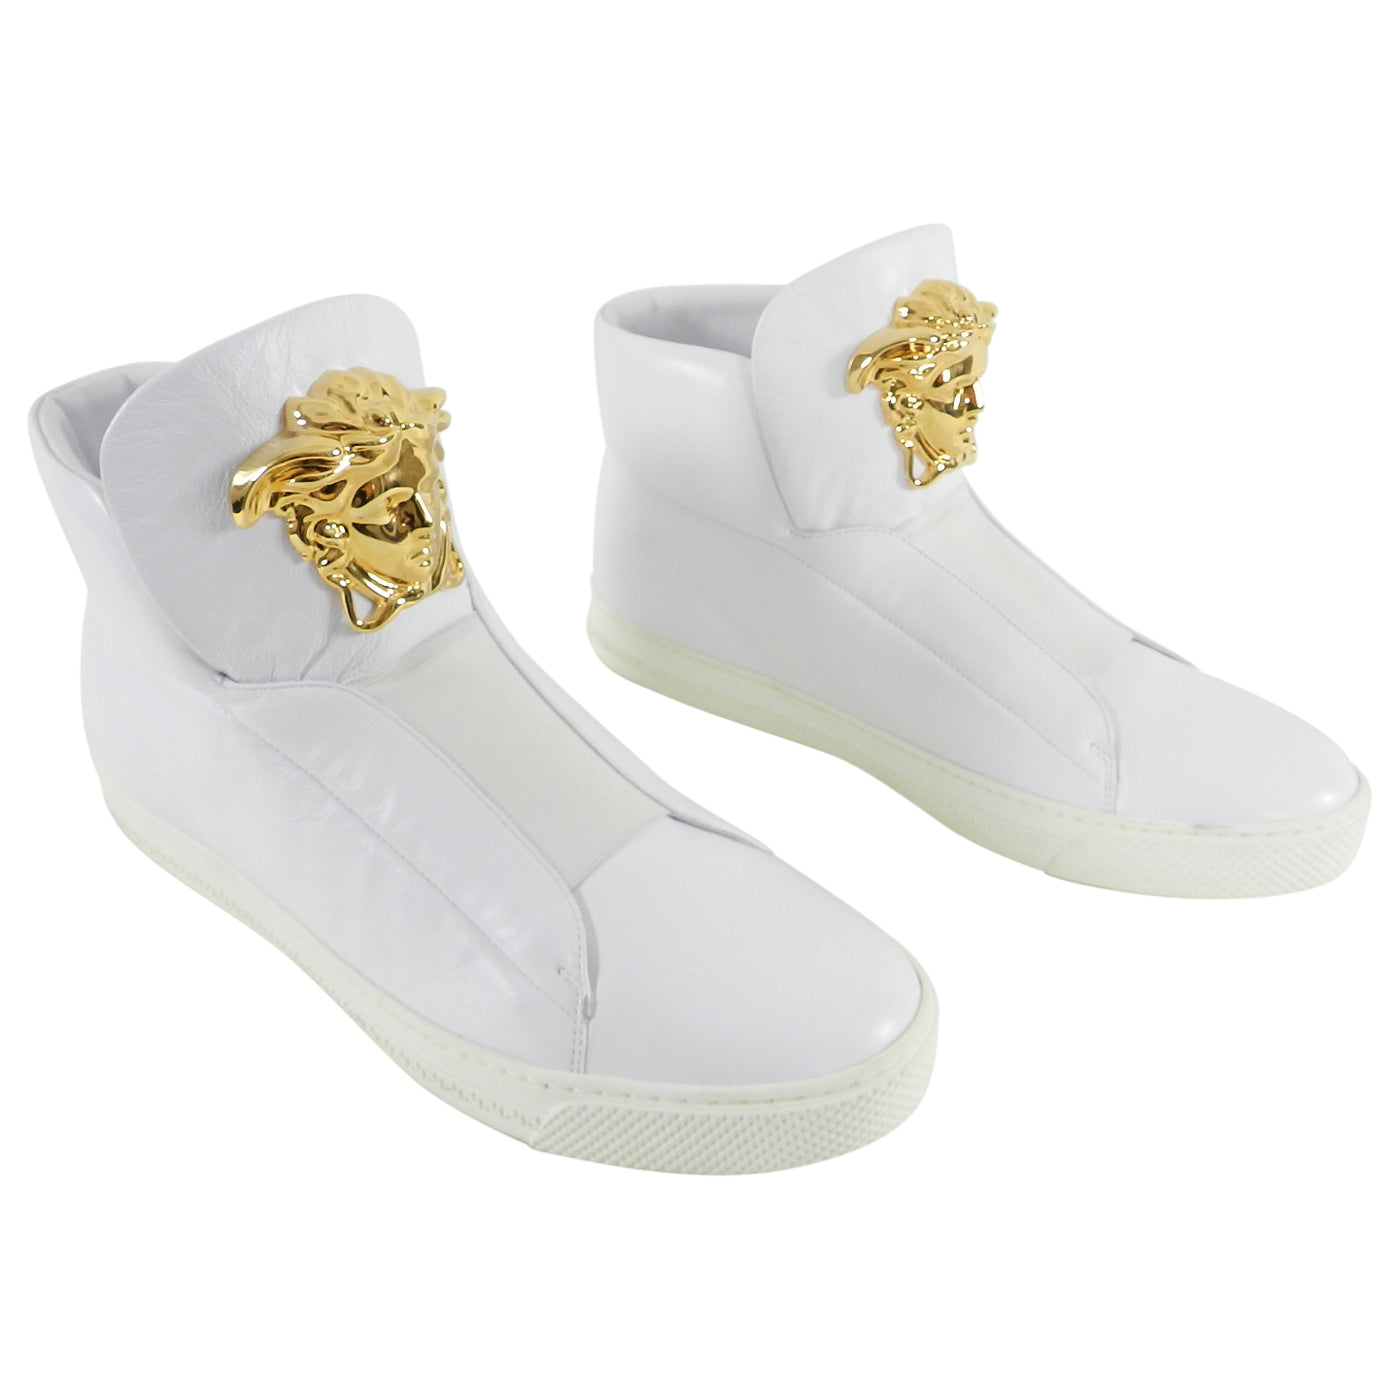 9e06e4d0 Versace White Leather Palazzo High Top Sneakers with Medusa - 10